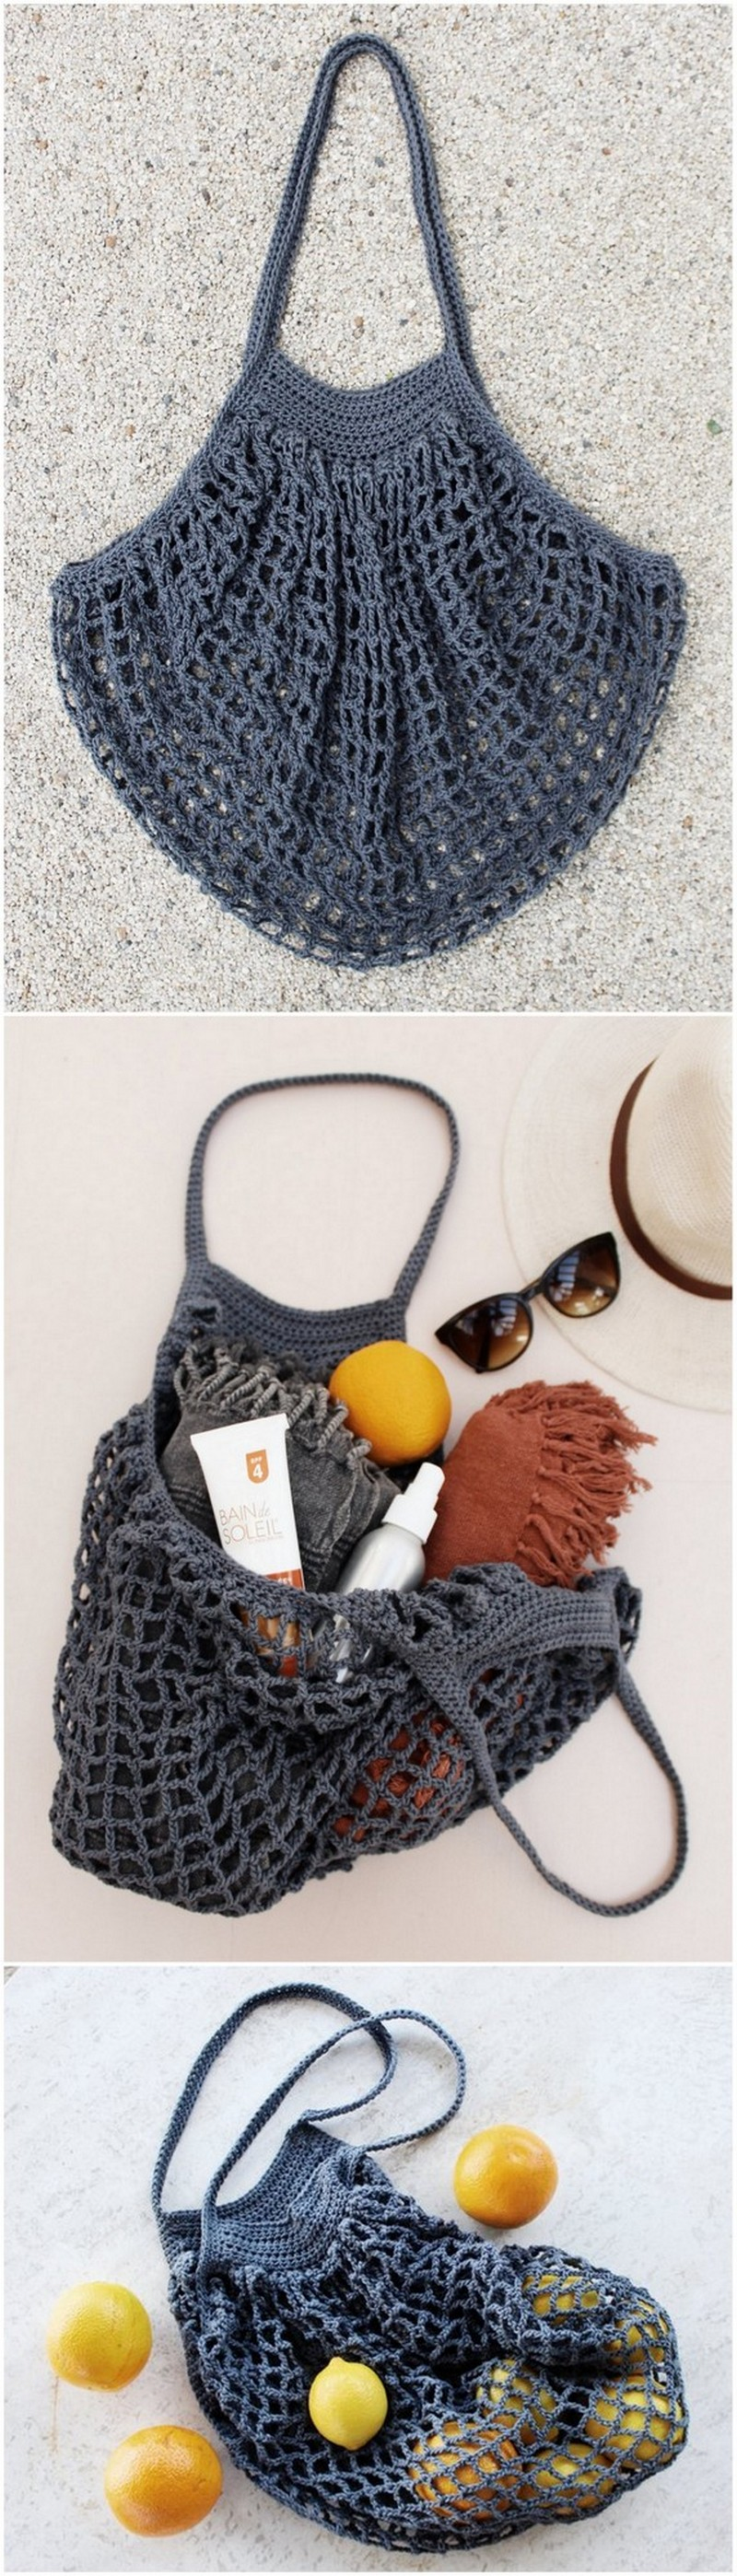 Crochet Bag Pattern (5)